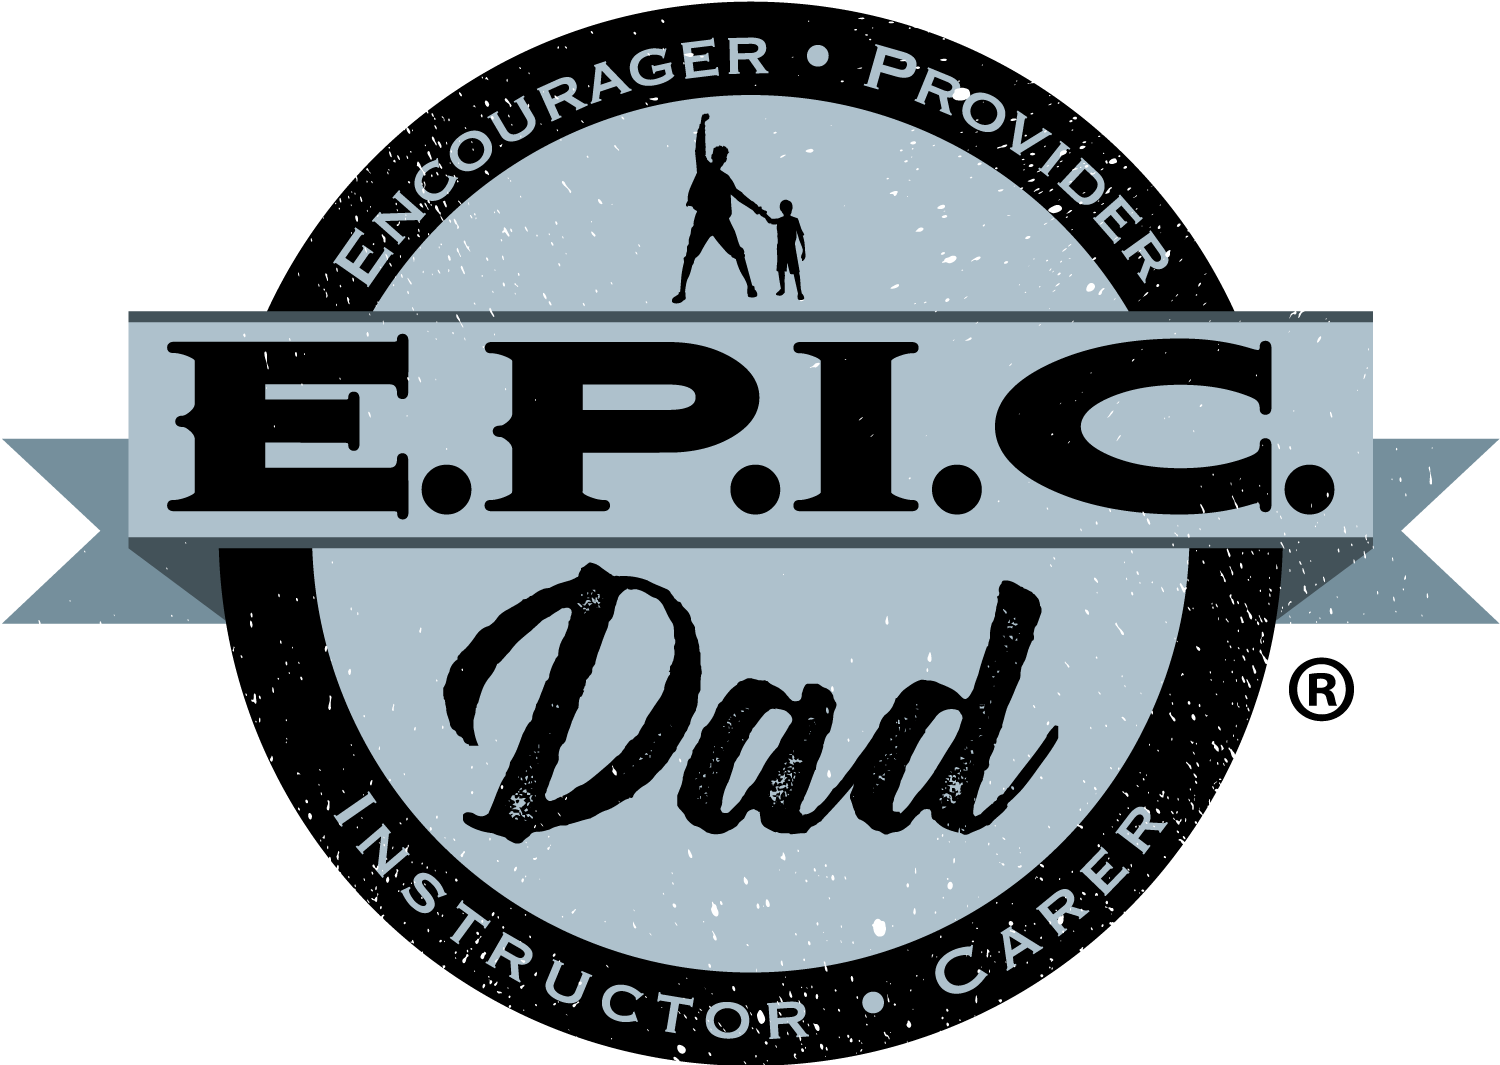 EPIC Dad Community Interest Company's logo